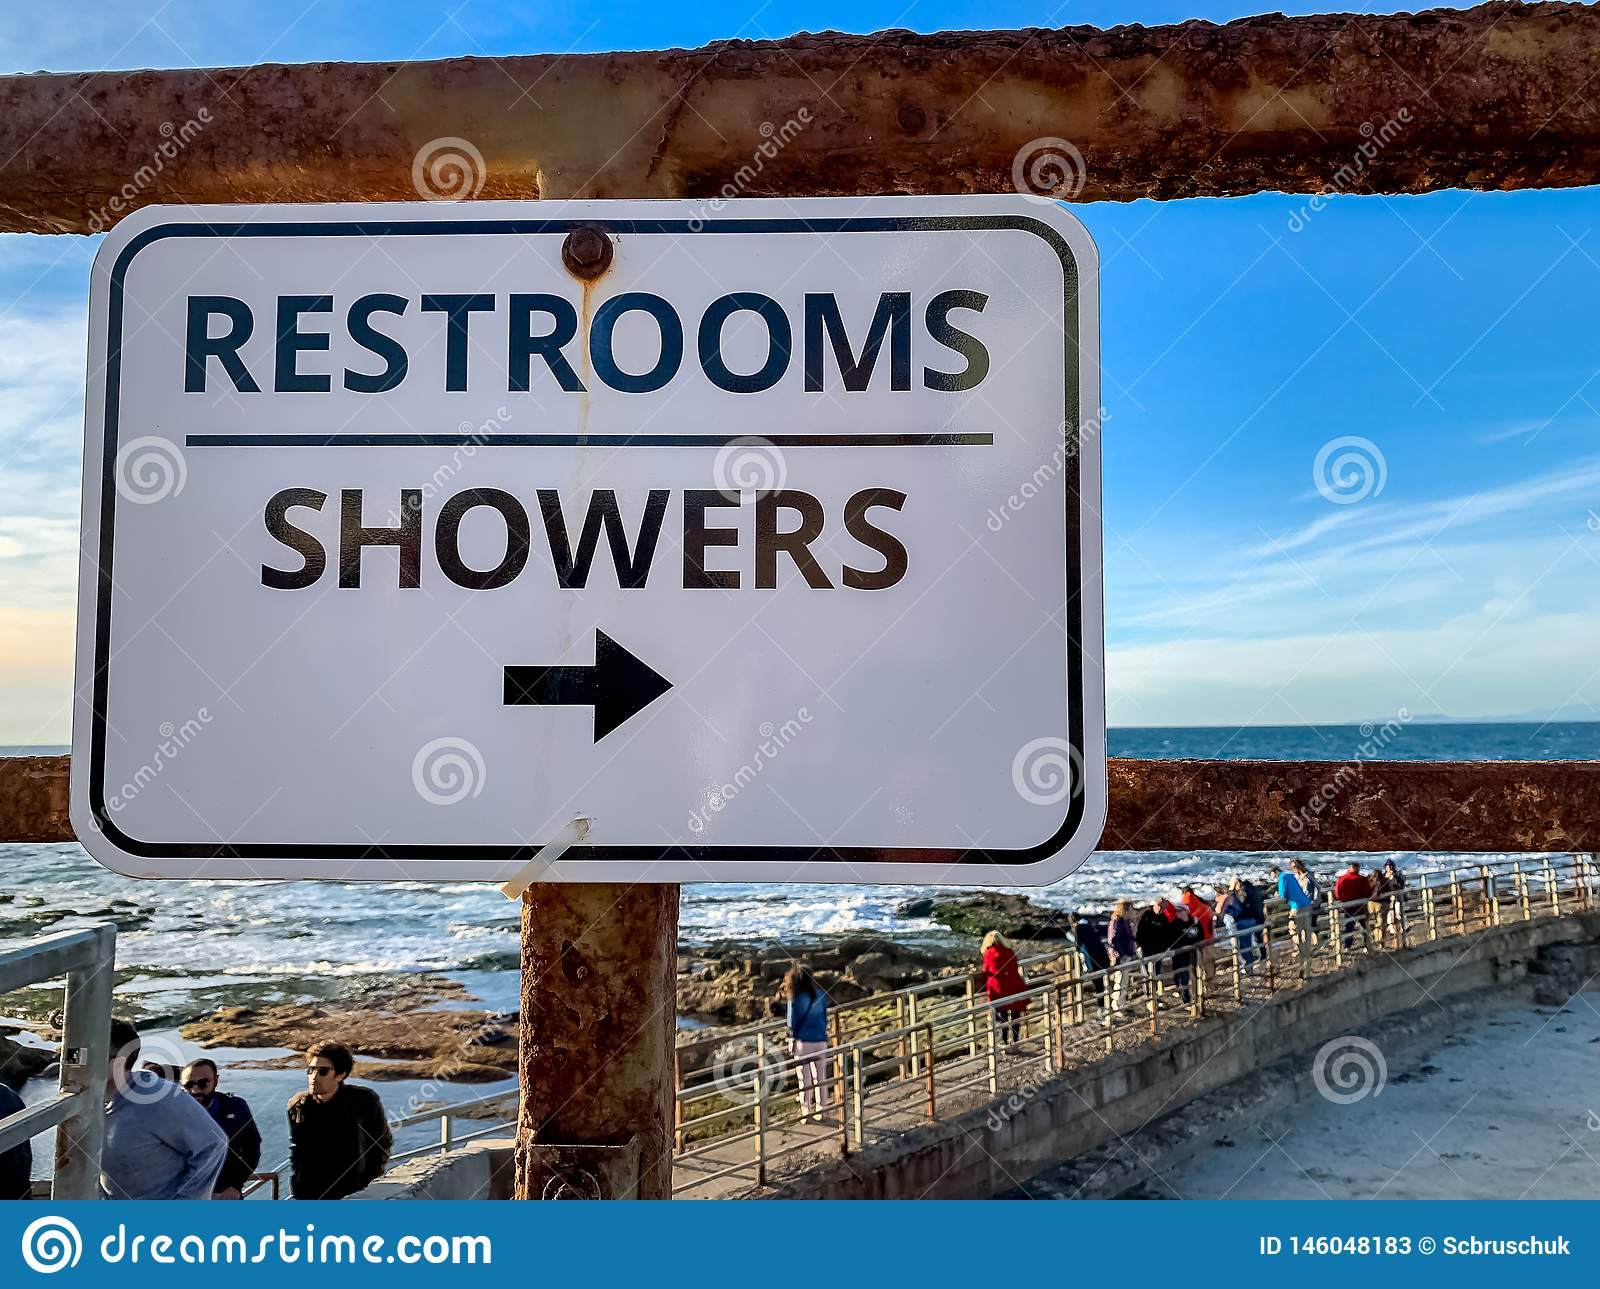 Sign for Restrooms and Showers at La Jolla Beach